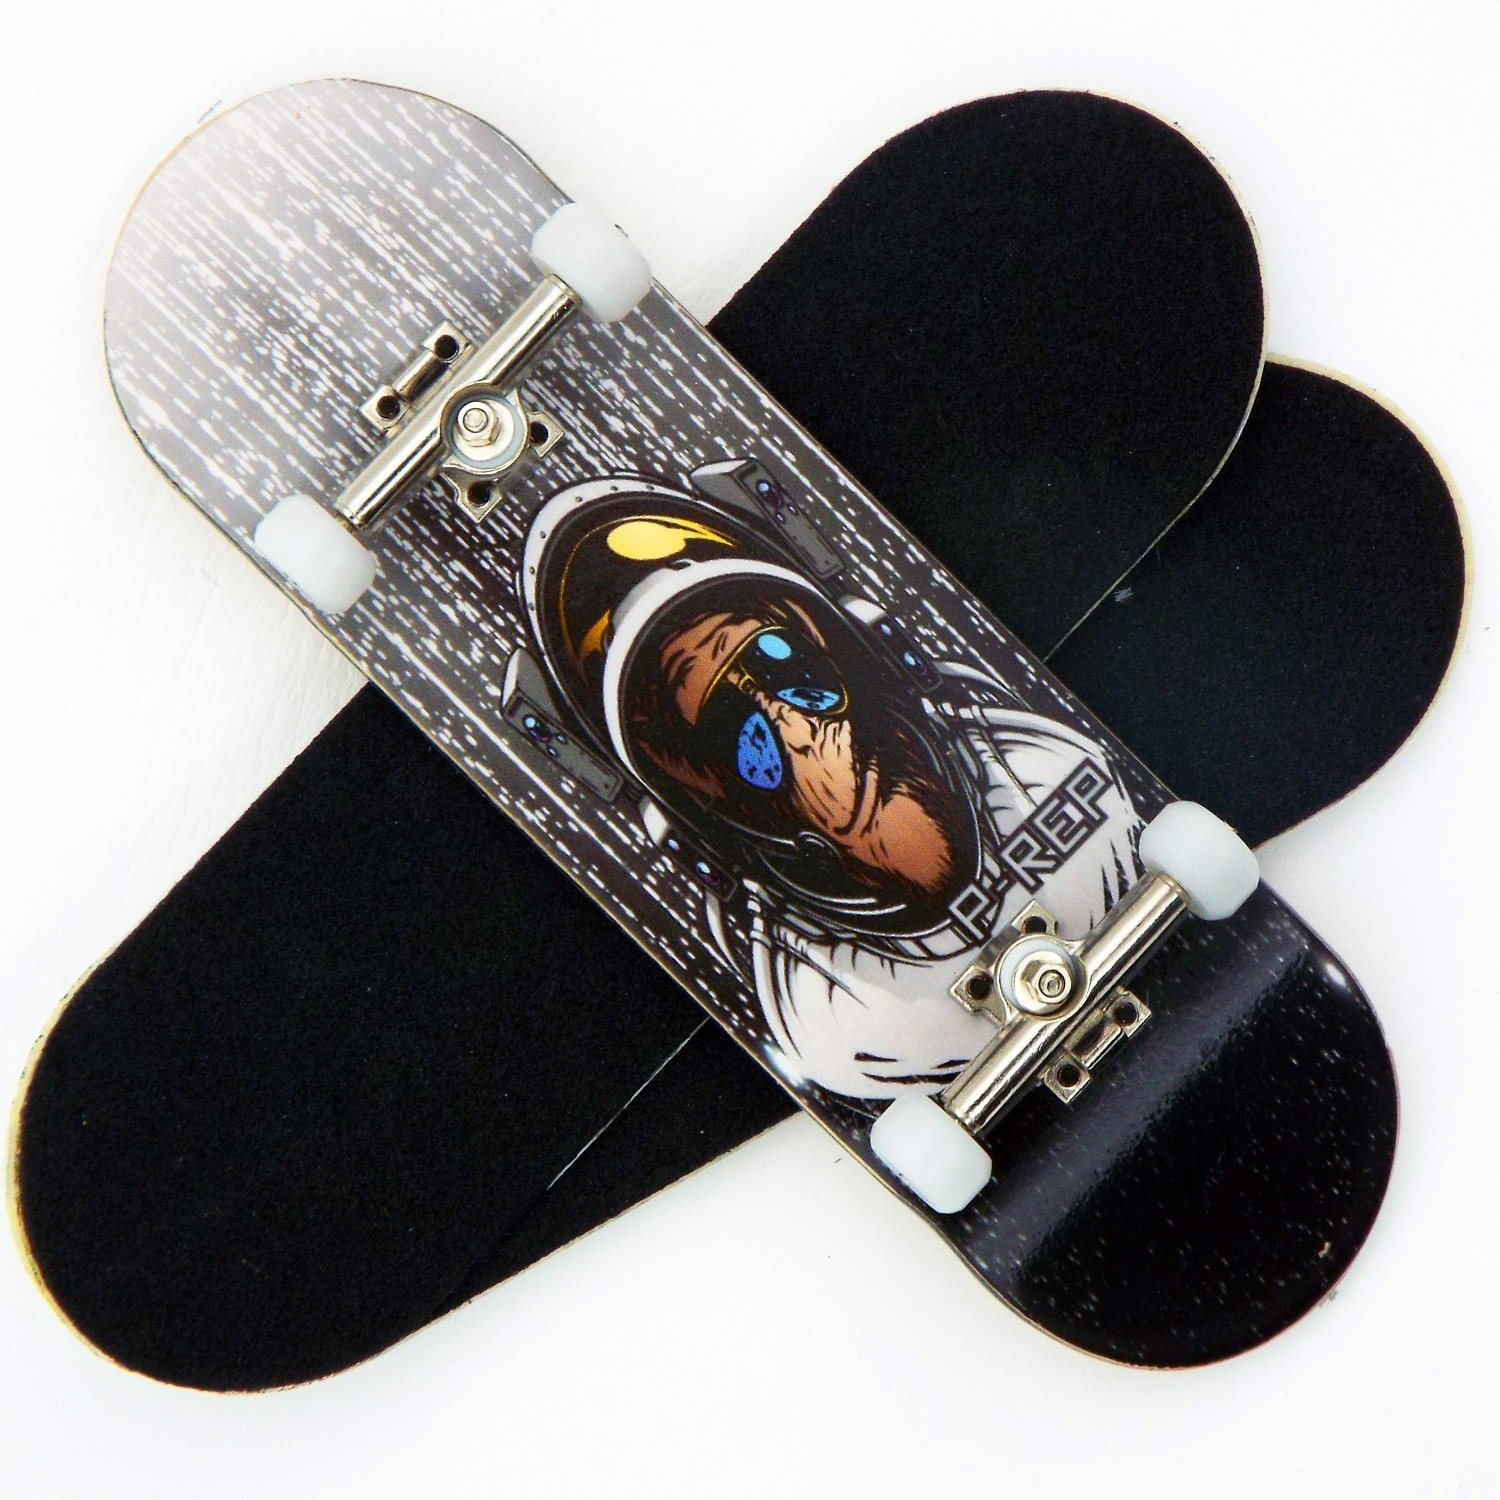 Peoples Republic P Rep Space Monkey 30mm Graphic Complete Wooden Fingerboard w CNC Lathed Bearing Wheels